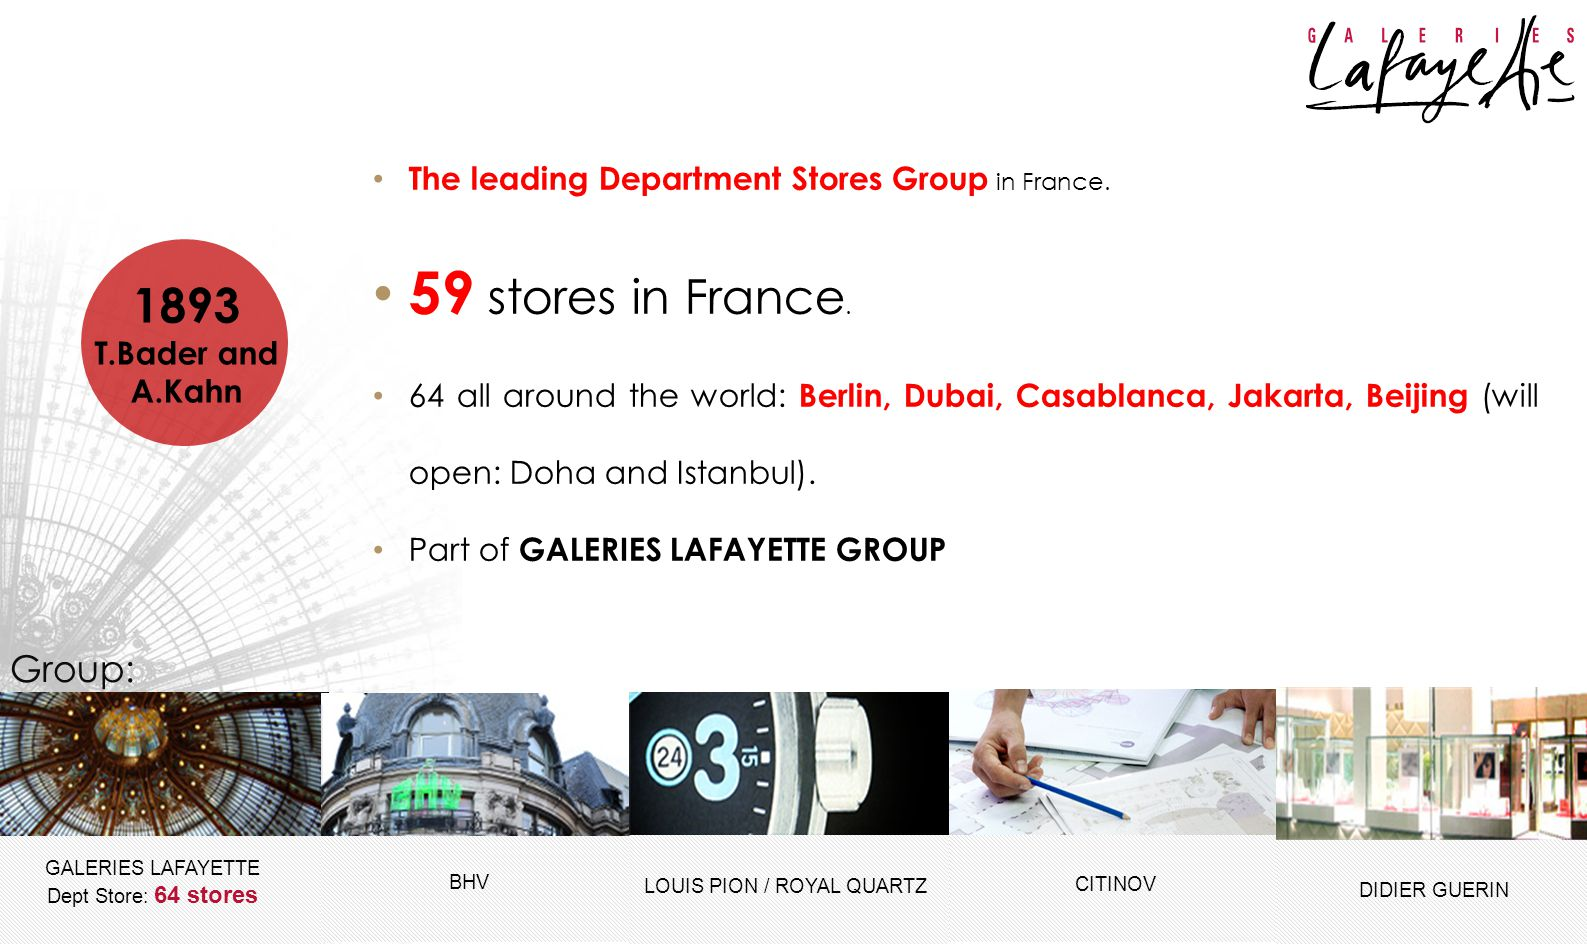 GALERIES LAFAYETTE Dept Store: 64 stores DIDIER GUERIN CITINOV TRAINING SECTION – HR DEPT. GALERIES LAFAYETTE INDONESIA Jl. Jendral Sudirman Kav 52 &